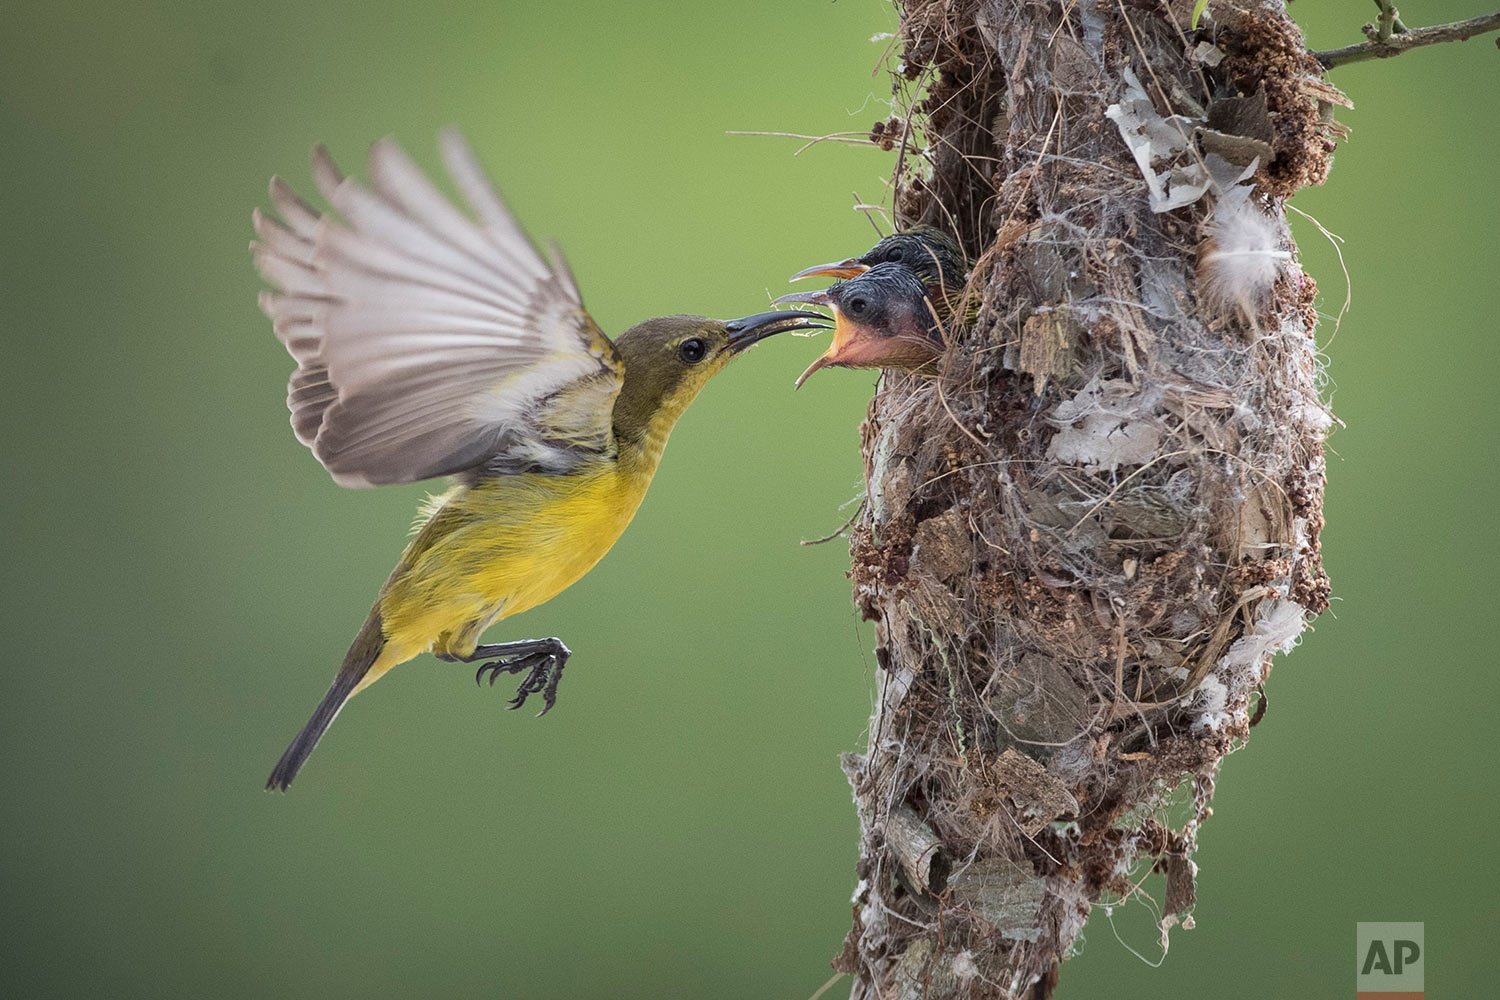 An Olive-backed Sunbird feeds its two babies insects in their nest in Klang, Selangor, Malaysia on Saturday, Jan. 21, 2017. Sunbirds, a group of very small passerine birds, feed largely on nectar, although they will also take insects, especially when feeding their young. Sunbirds are found in tropical Africa, India, and the forests of Southeast Asia, including the Philippines. (AP Photo/Vincent Thian)